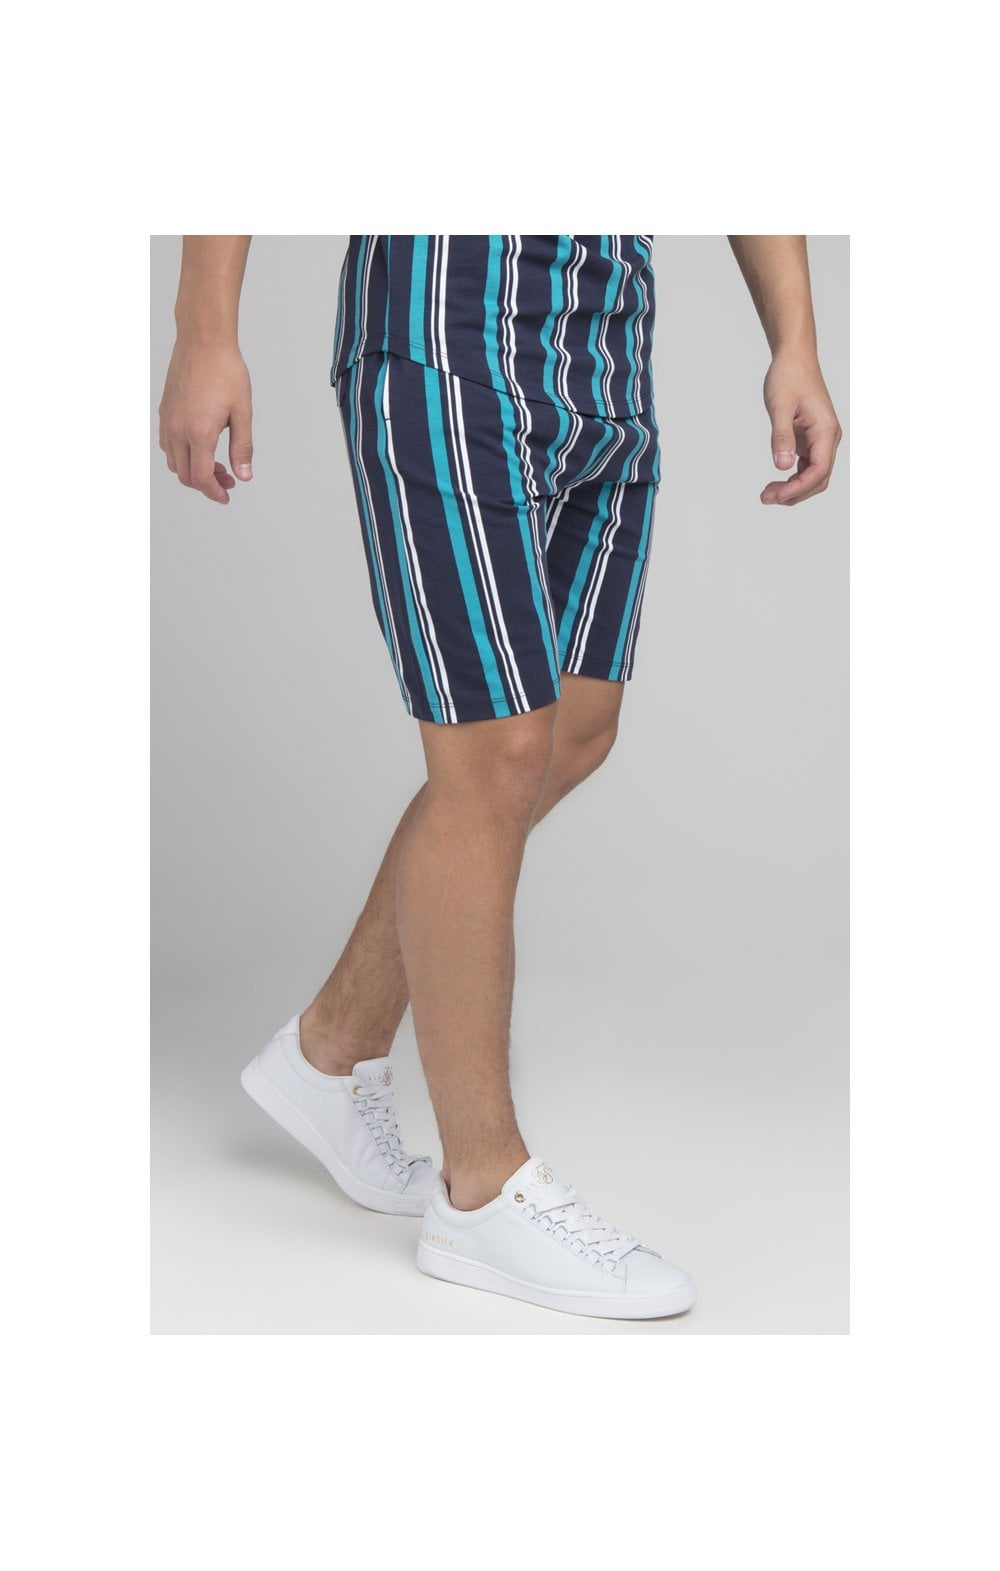 Illusive London Stripe Shorts - Navy & Teal (1)